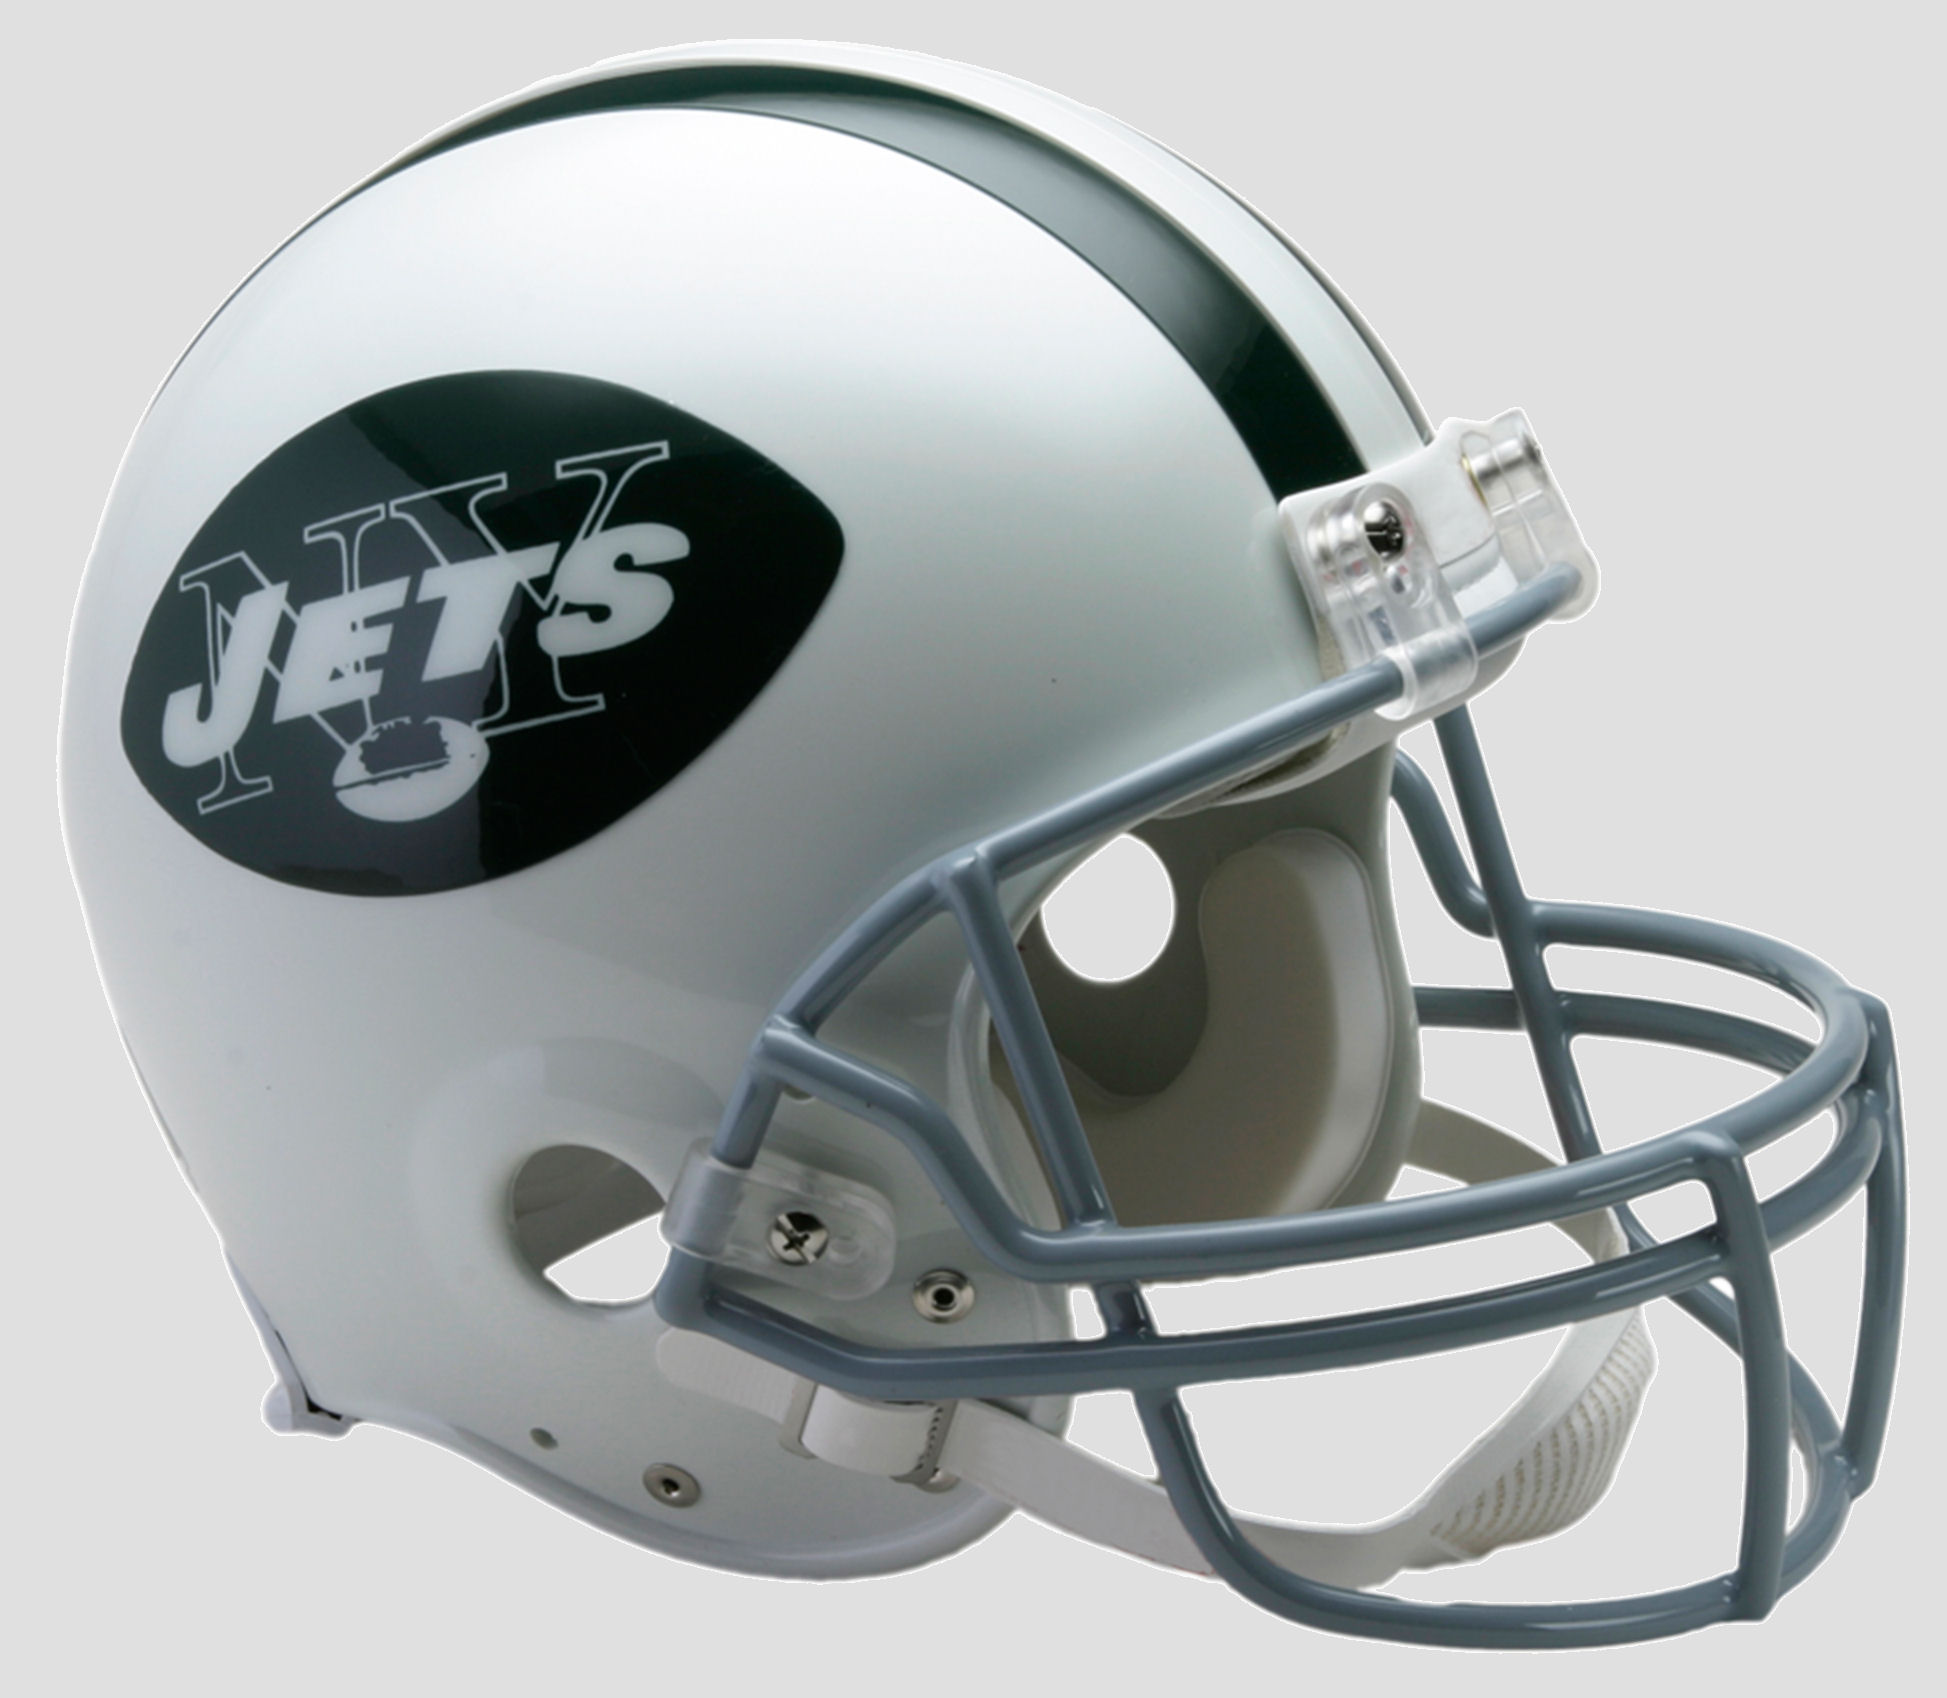 New York Jets 1965 to 1977 Football Helmet